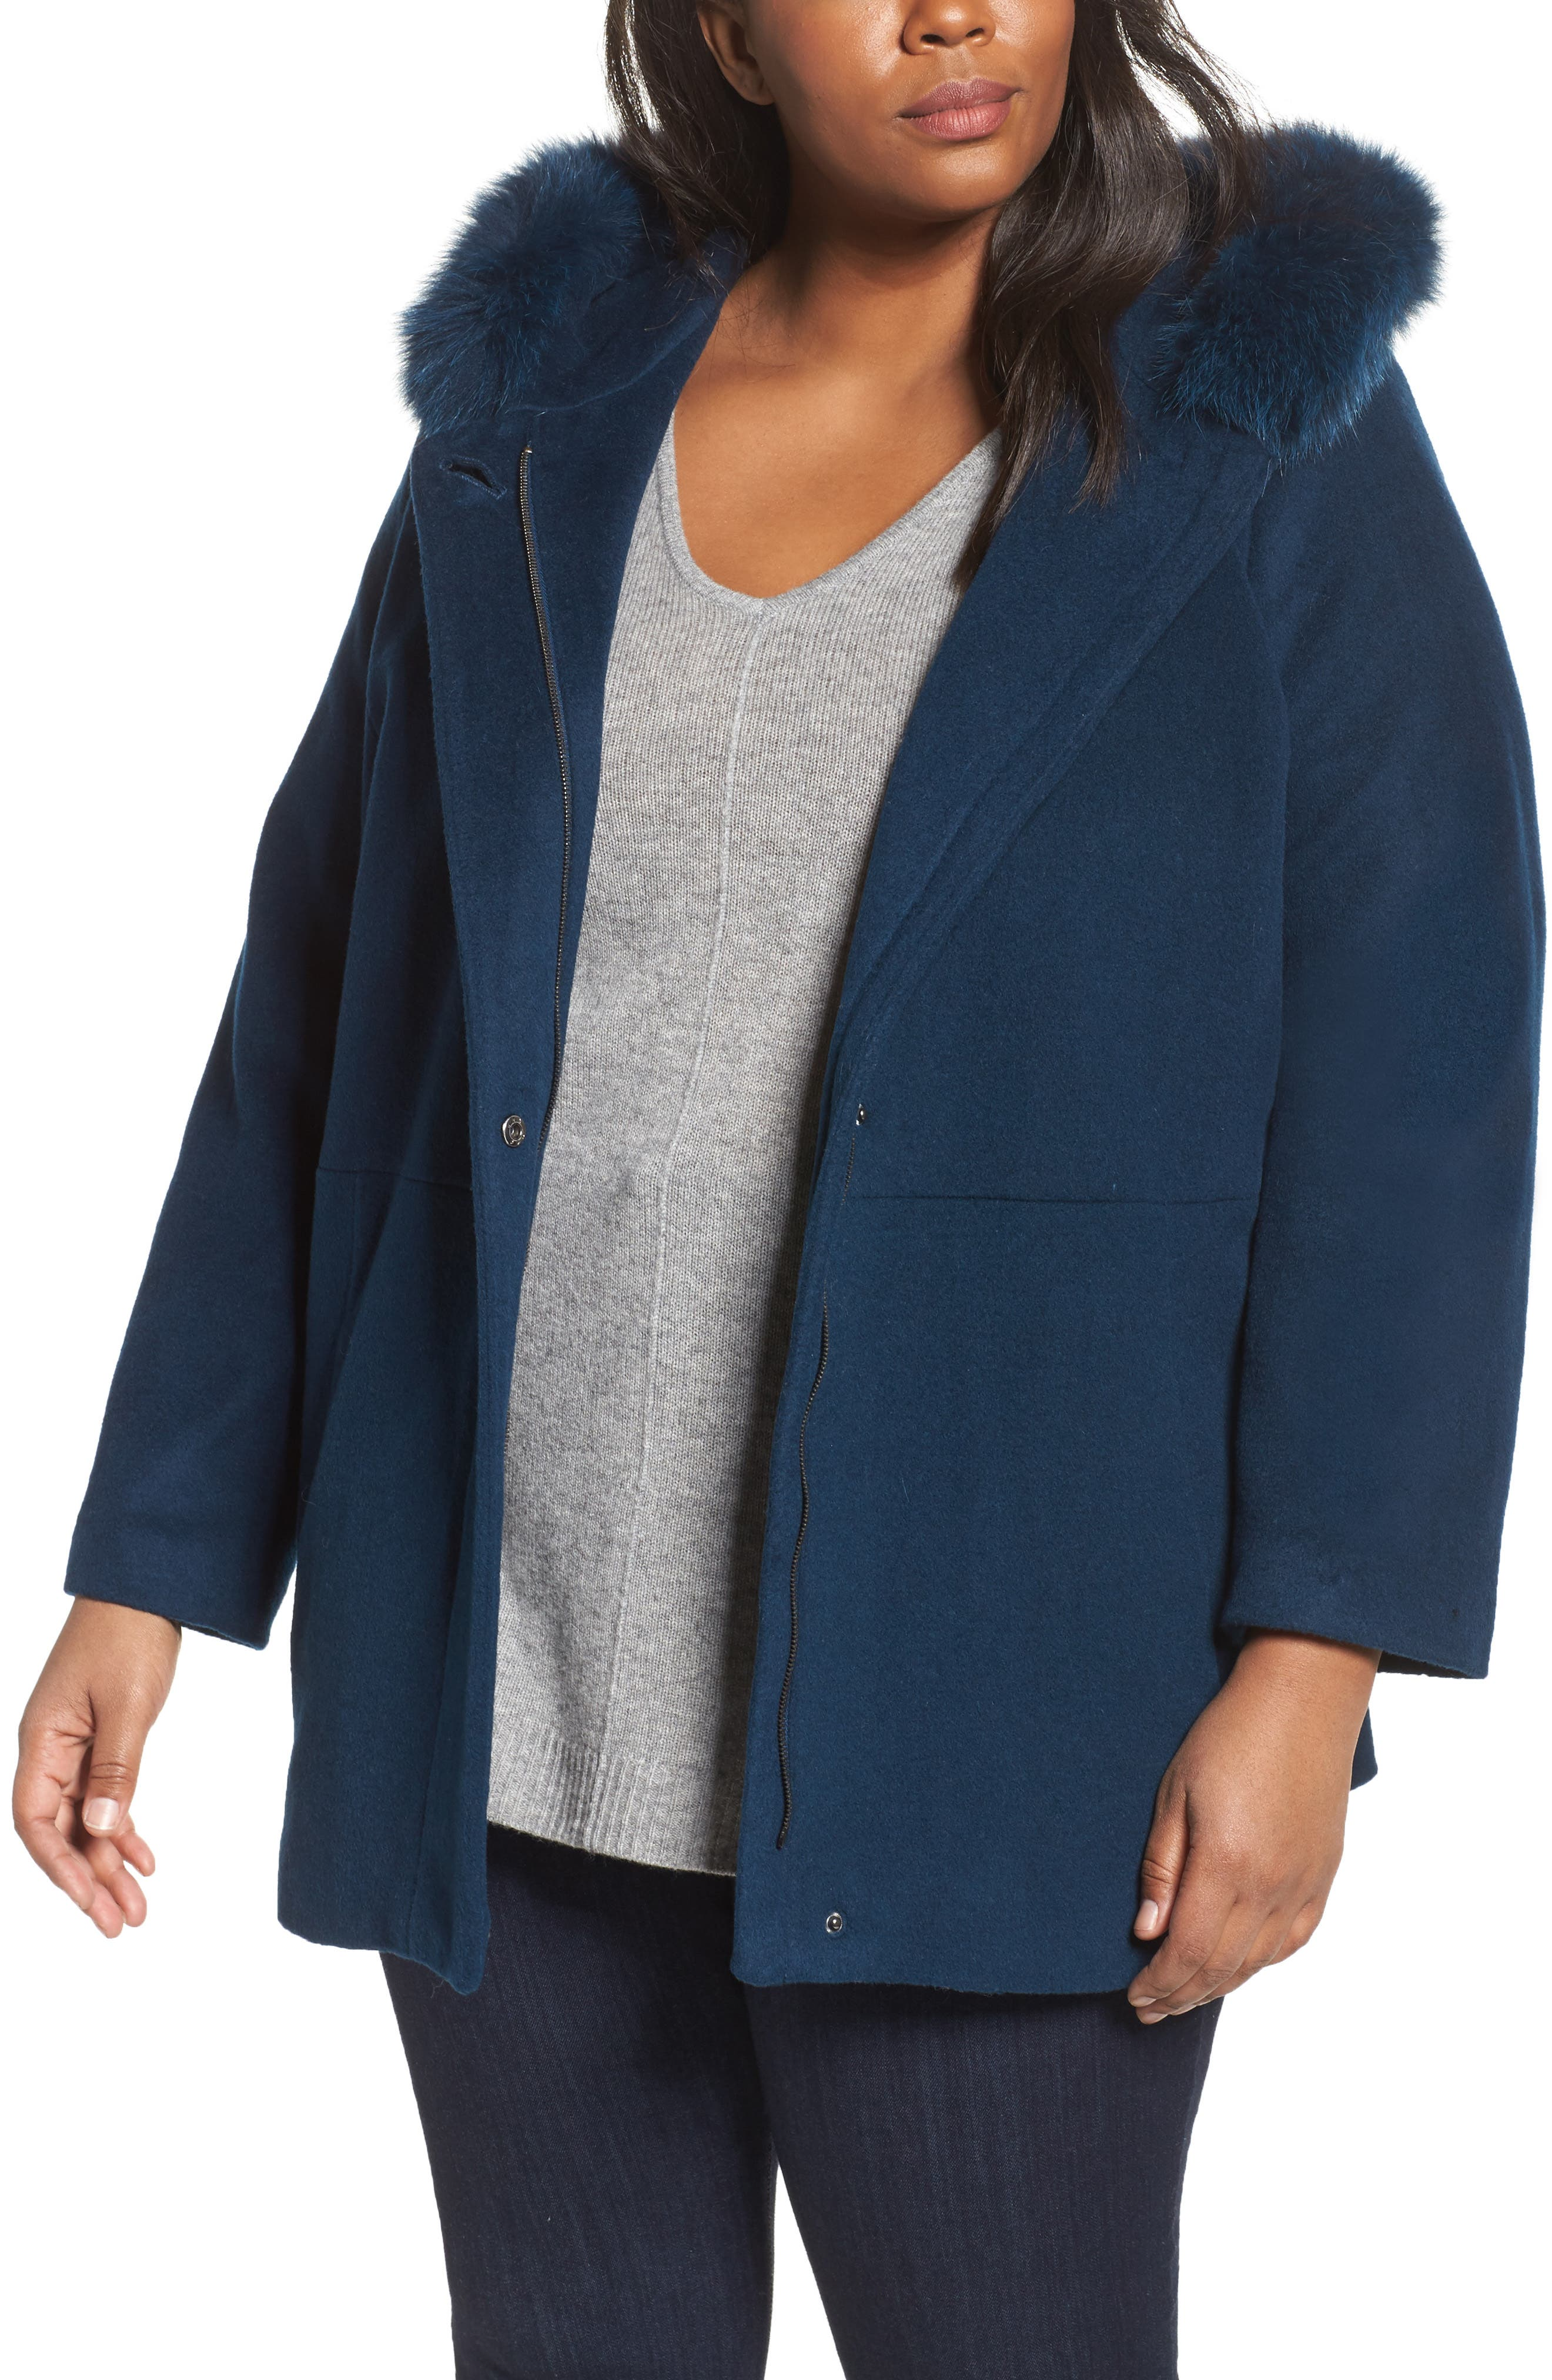 Alternate Image 1 Selected - Sachi Genuine Fox Fur Trim Hooded Wool Blend Jacket (Plus Size)